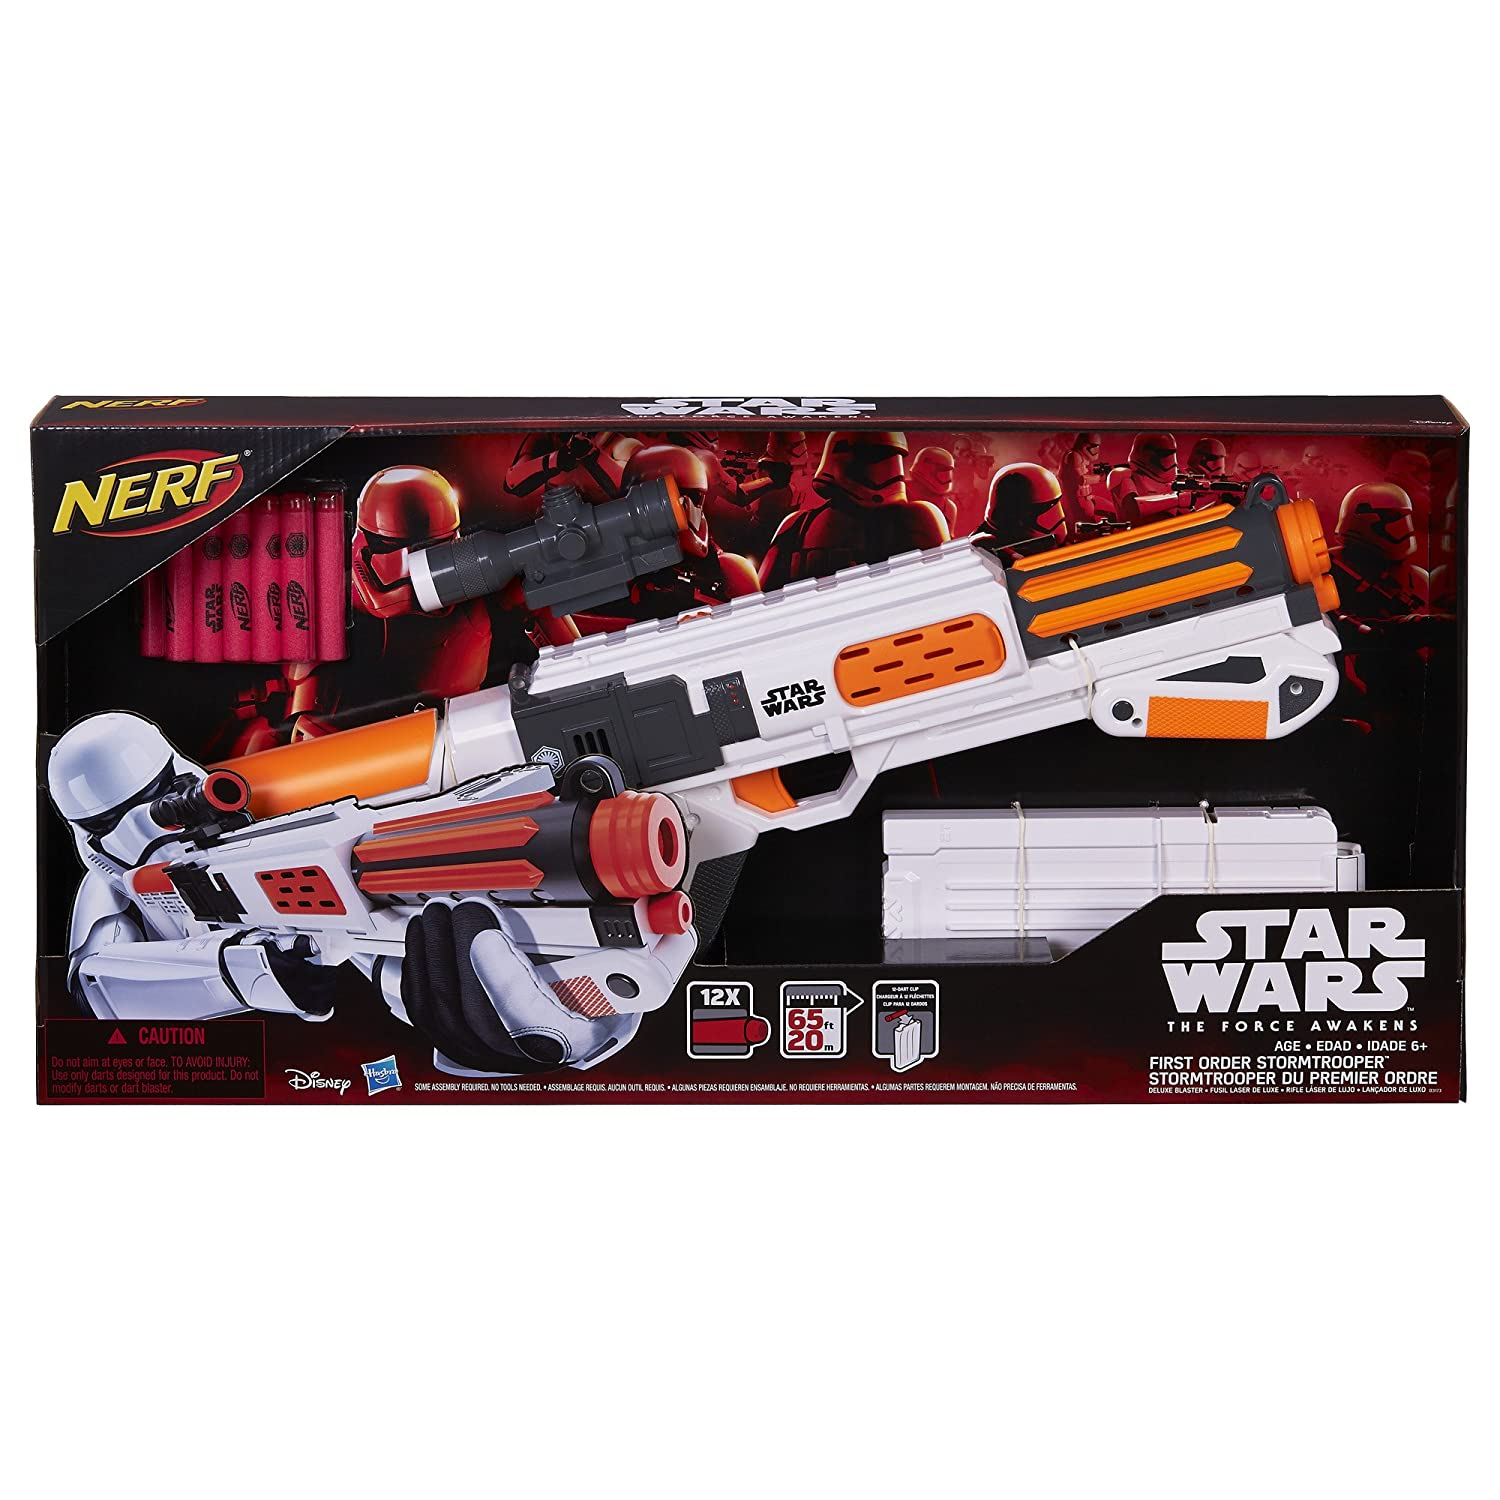 Amazon Star Wars Nerf Episode VII First Order Stormtrooper Deluxe Blaster Hasbro Toys & Games